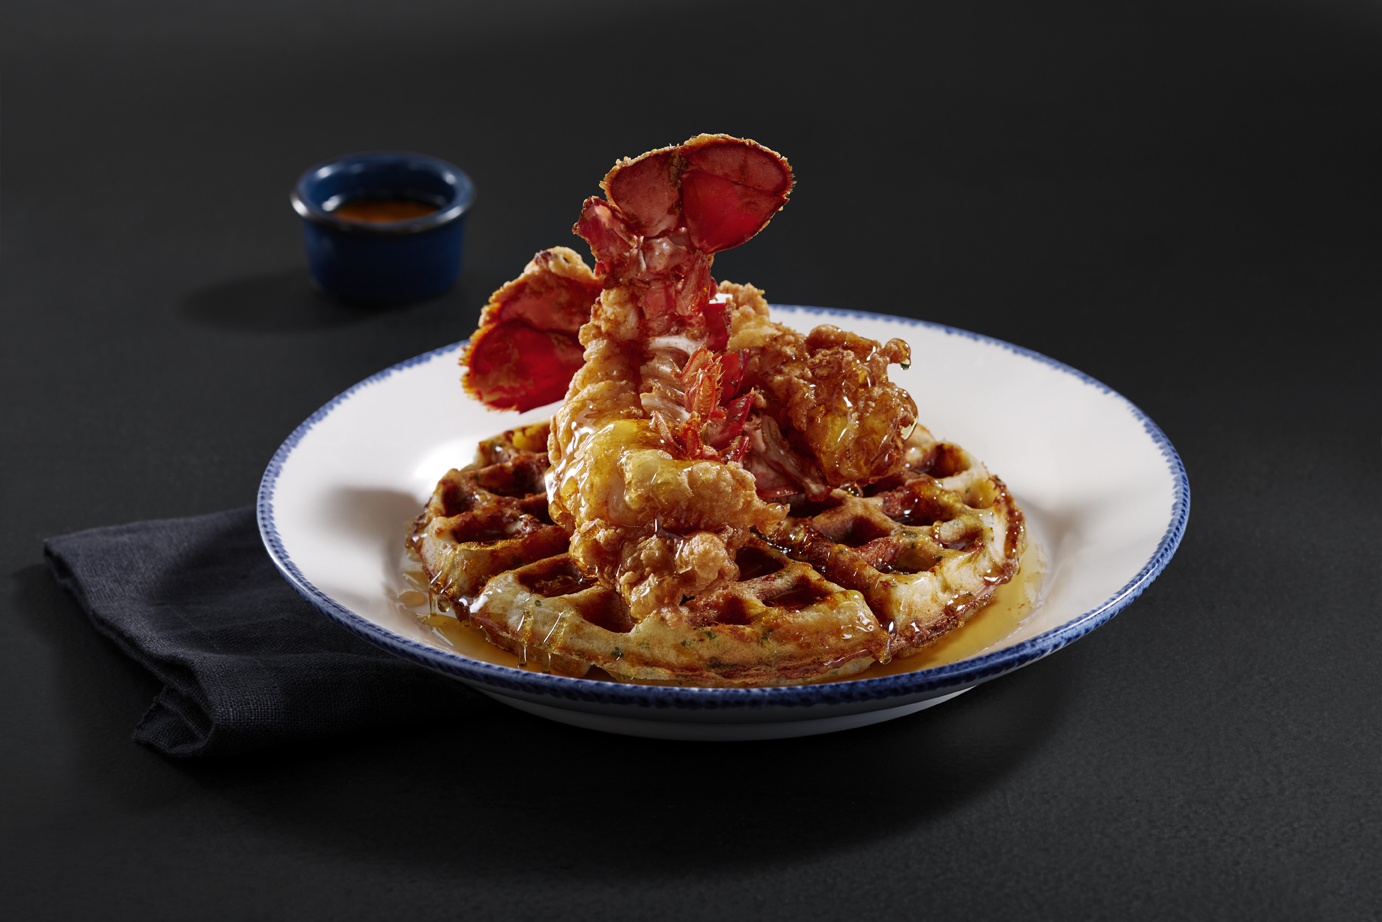 Fried Lobster and Waffles at Red Lobster